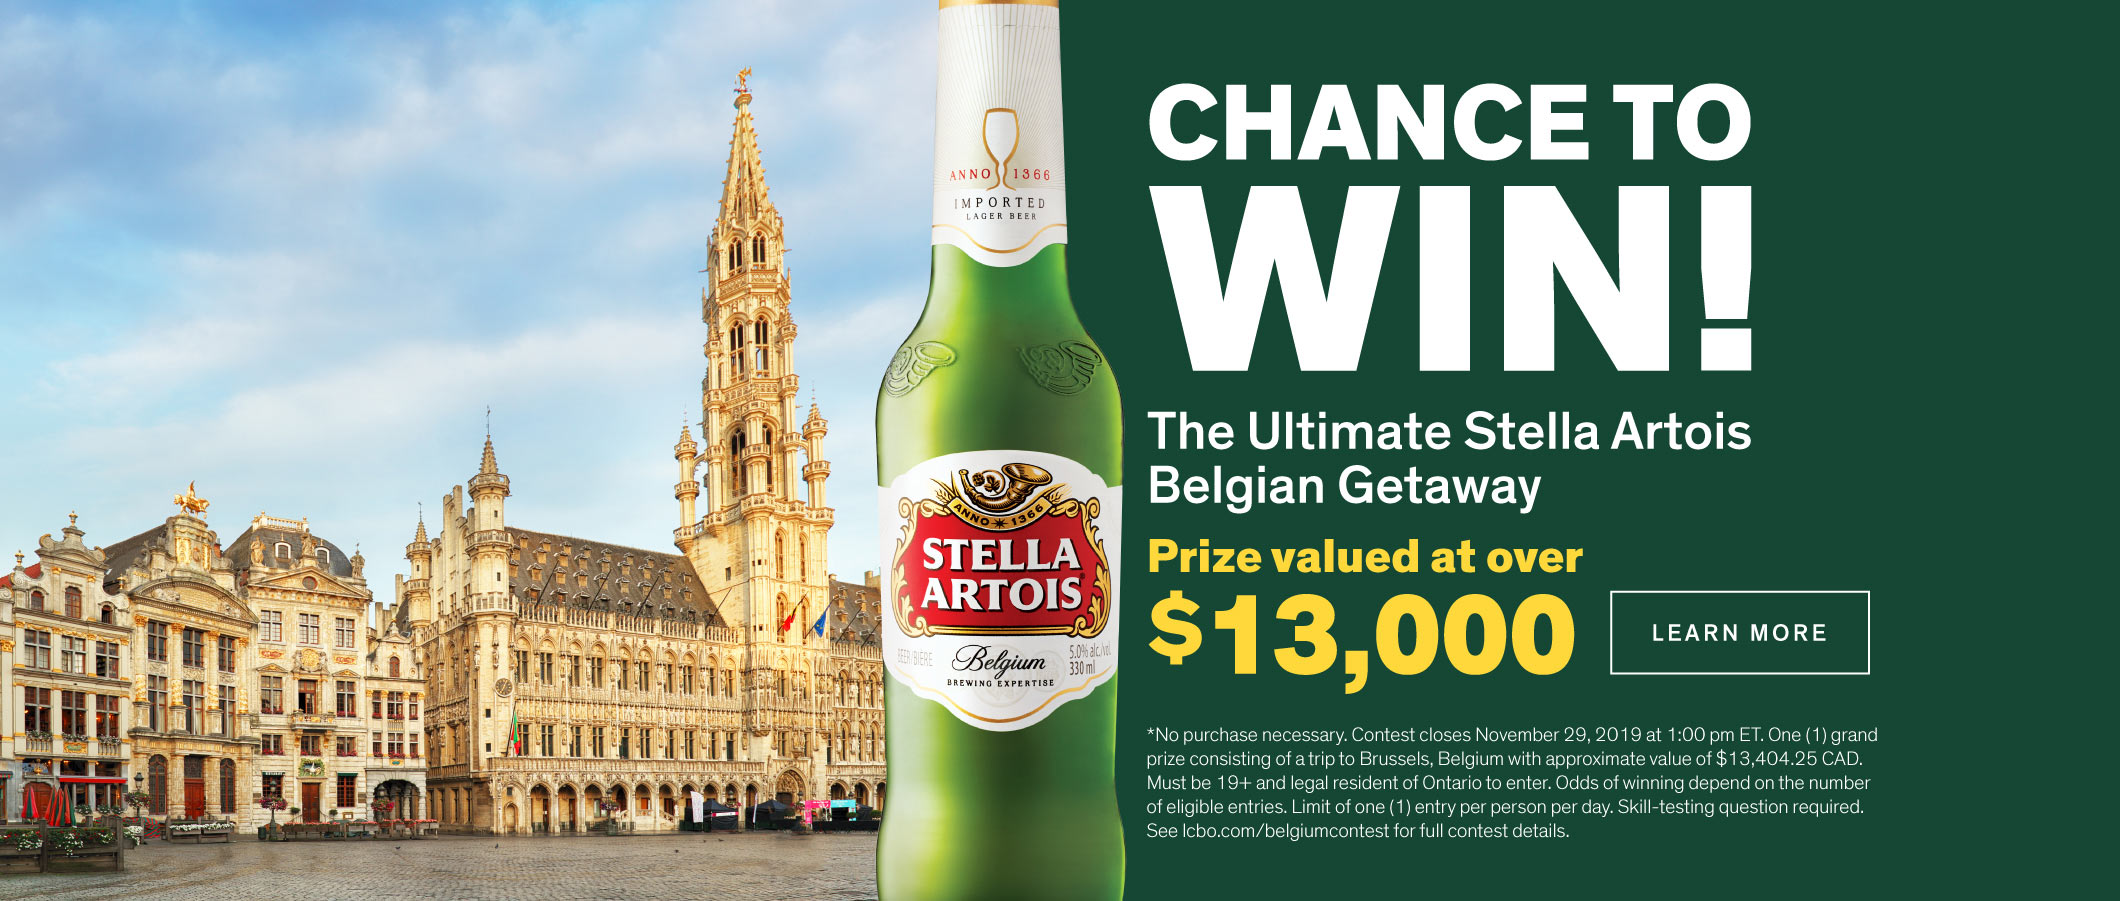 You Have a Chance to Win the Stella Artois Belgian Beer Getaway!  LEARN MORE